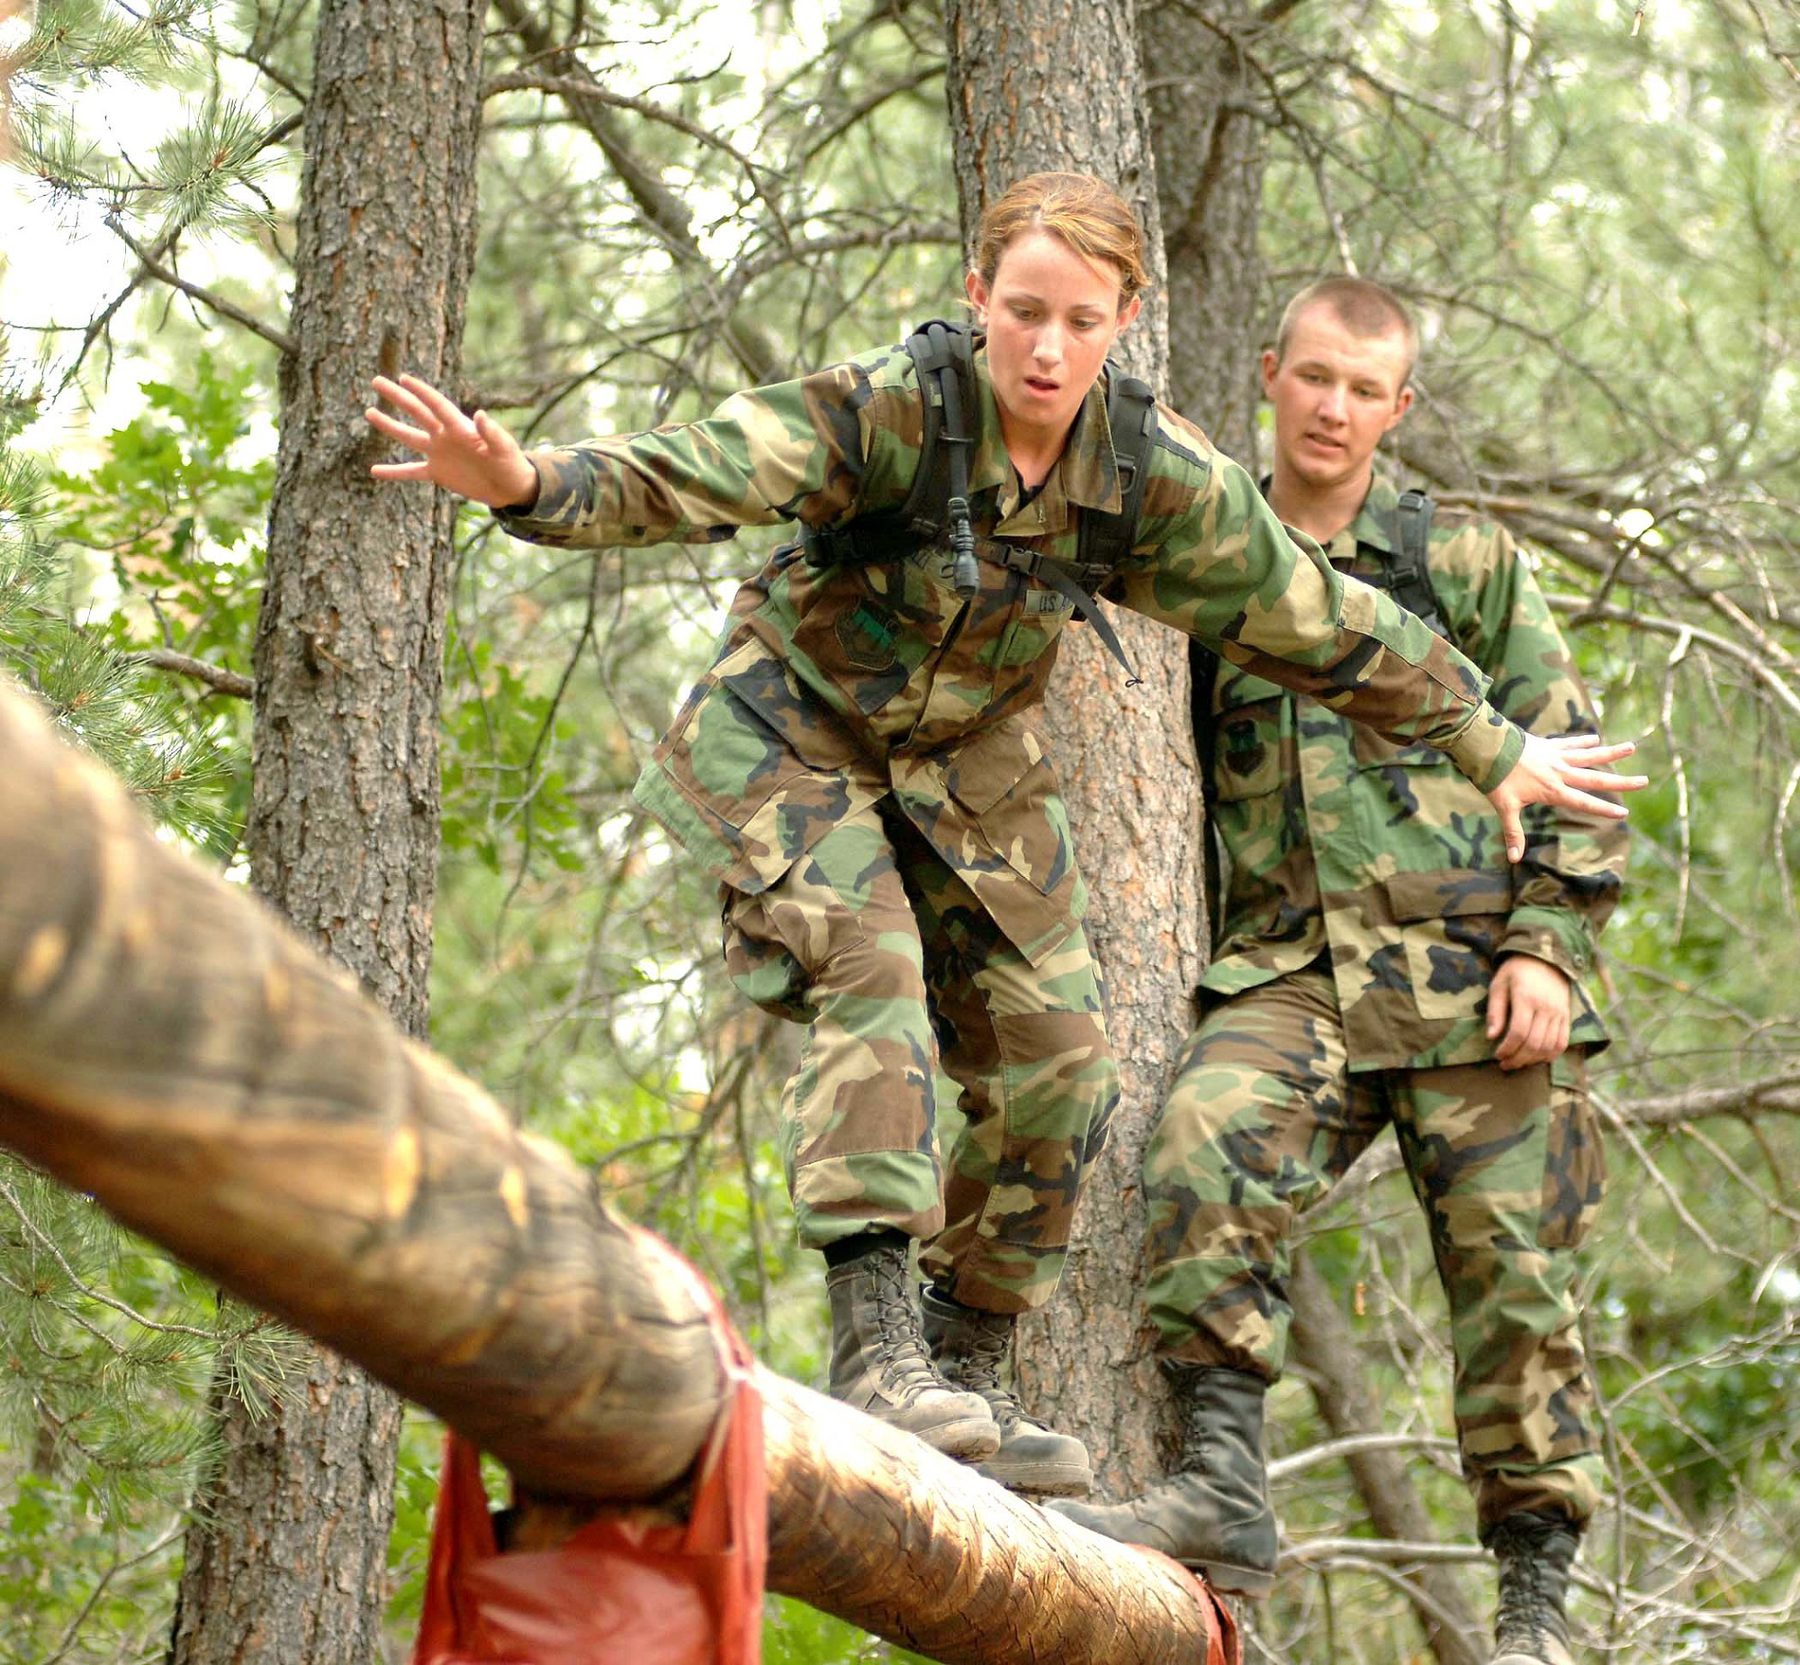 HM Forces (Industry Header: Basic Training, Person Balancing on Log)